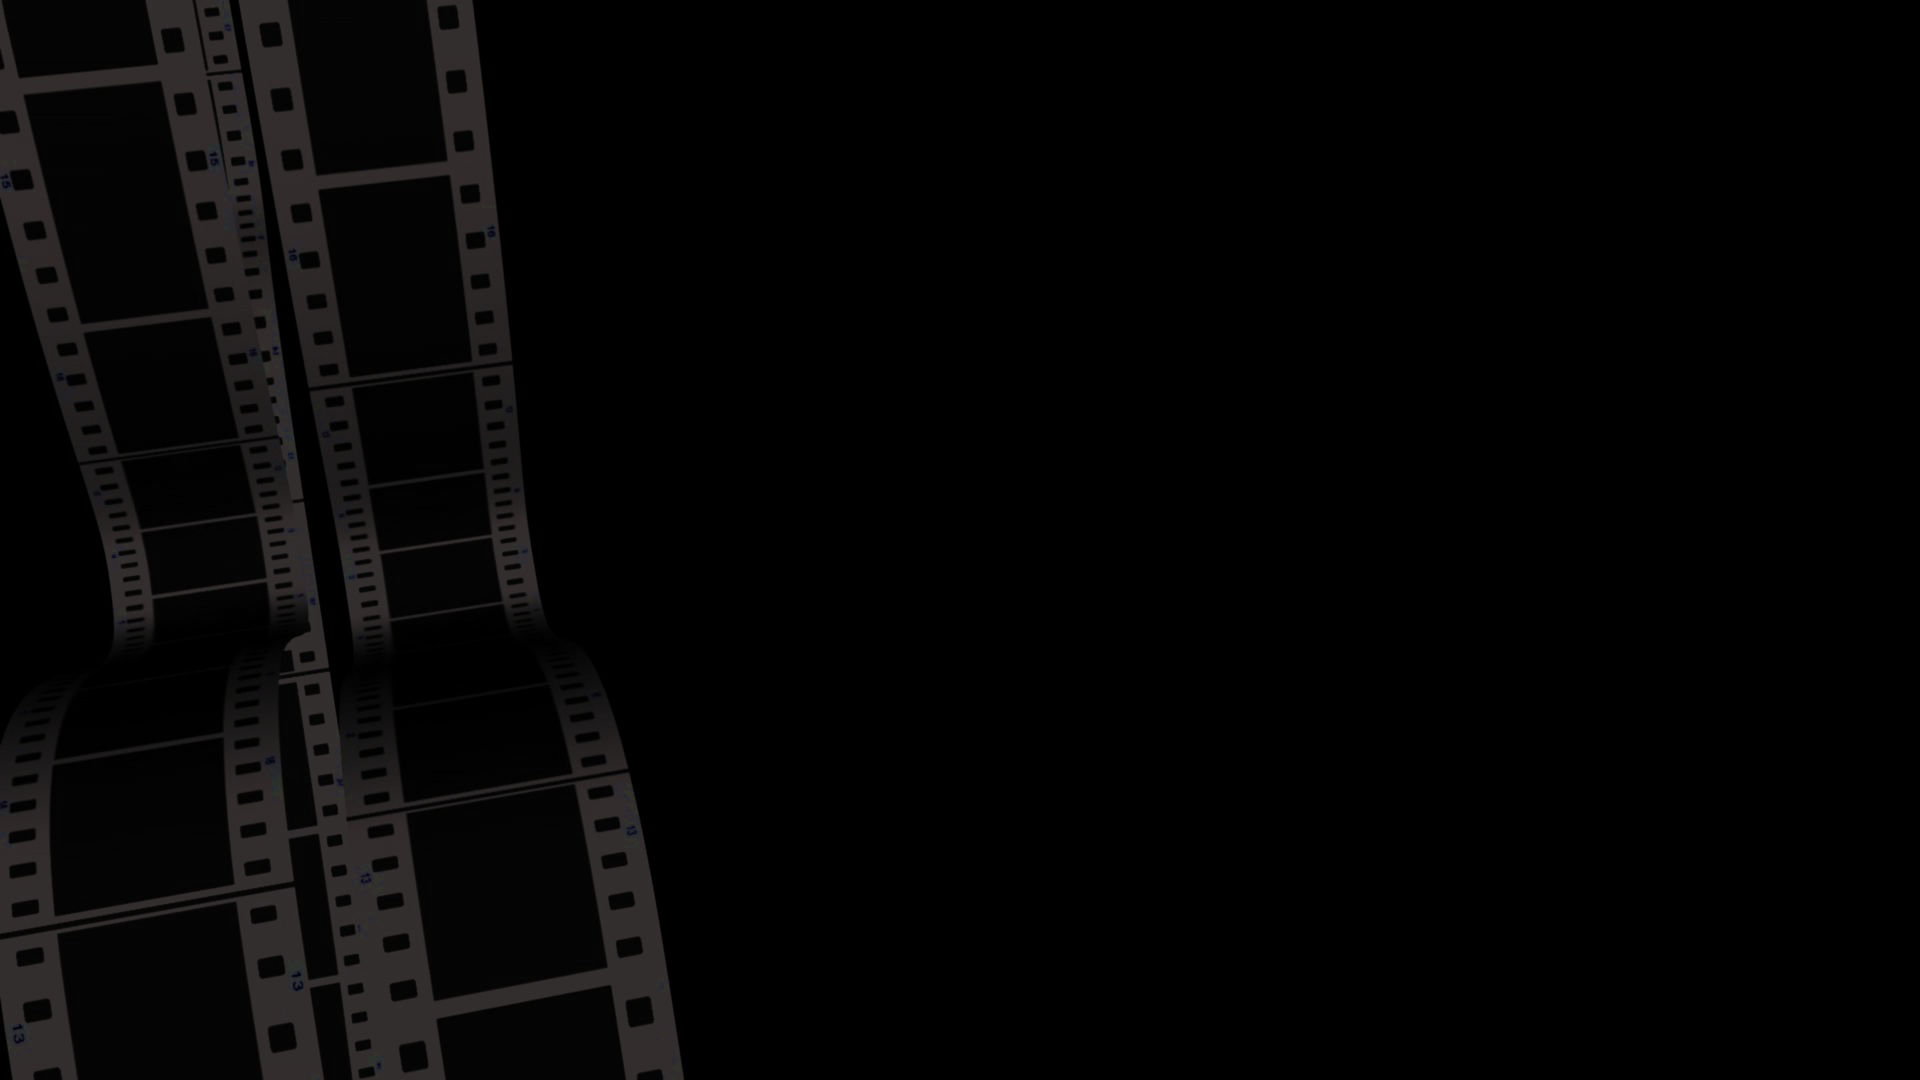 Pascal Productions Ltd, a Film production company